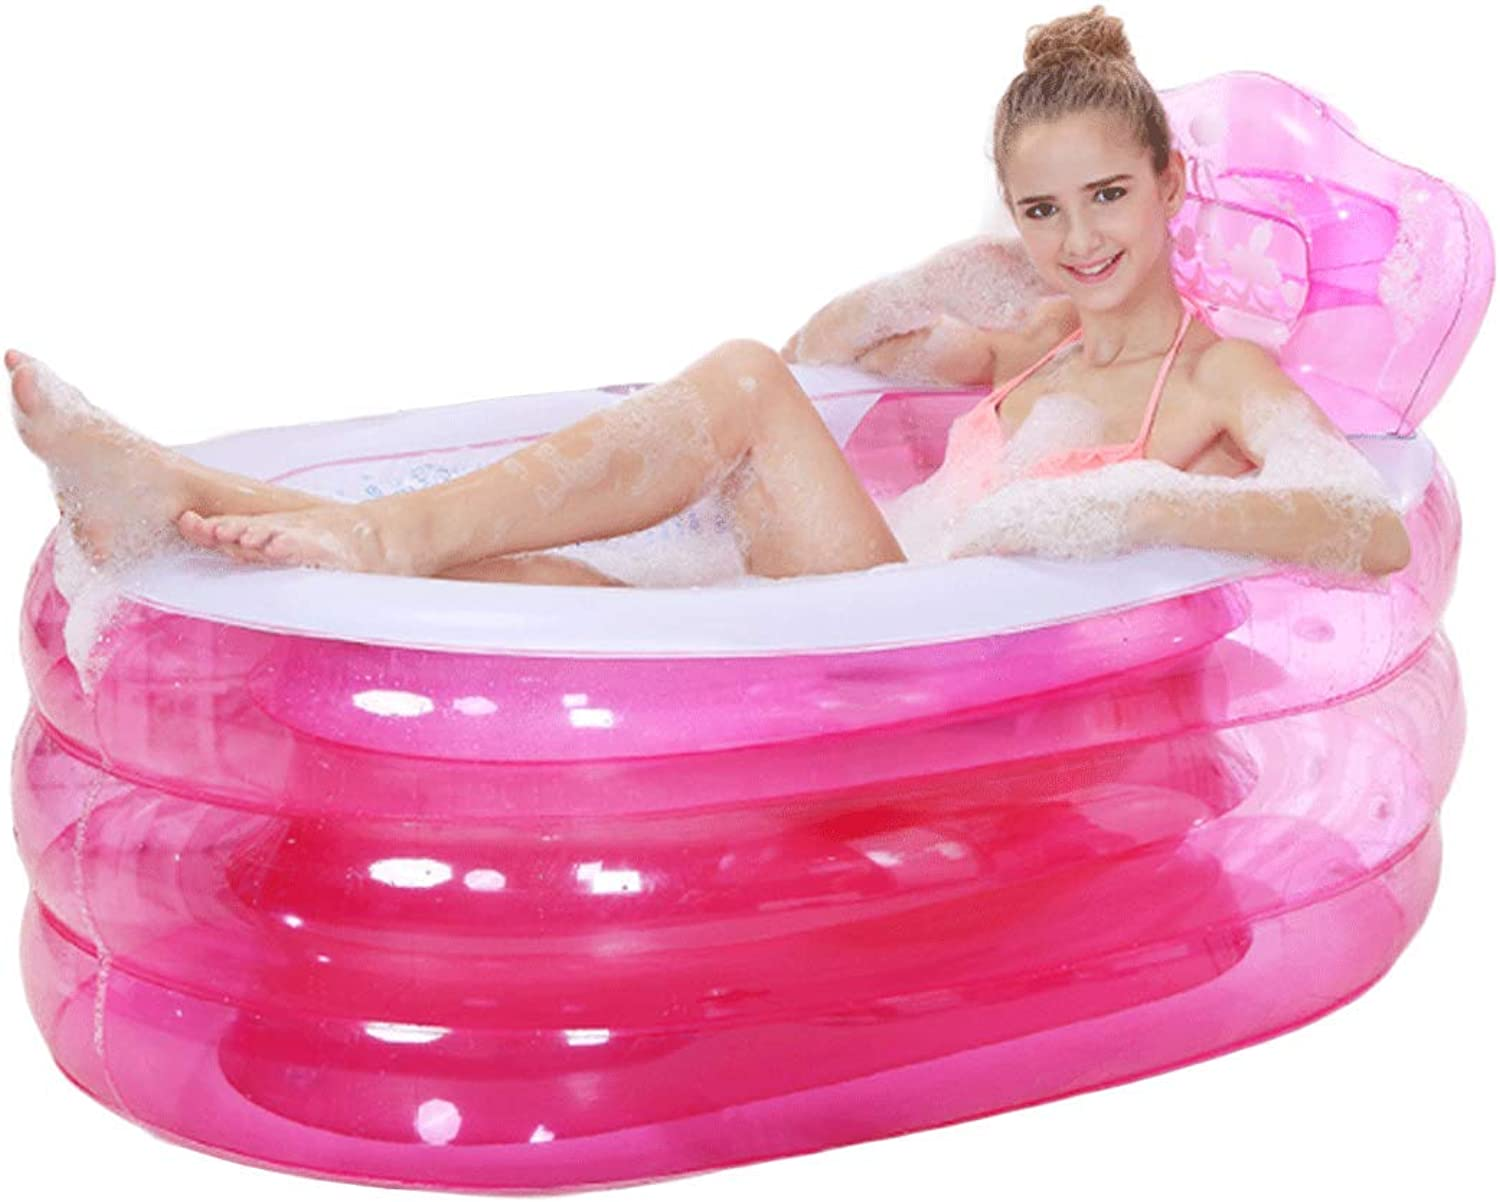 Shufulive Crystal Inflatable Bathtub - Adult Portable Foldable Plastic Home SPA Bath Tub Pool with Manual Air Pump,130×75×70cm, bluee and Pink